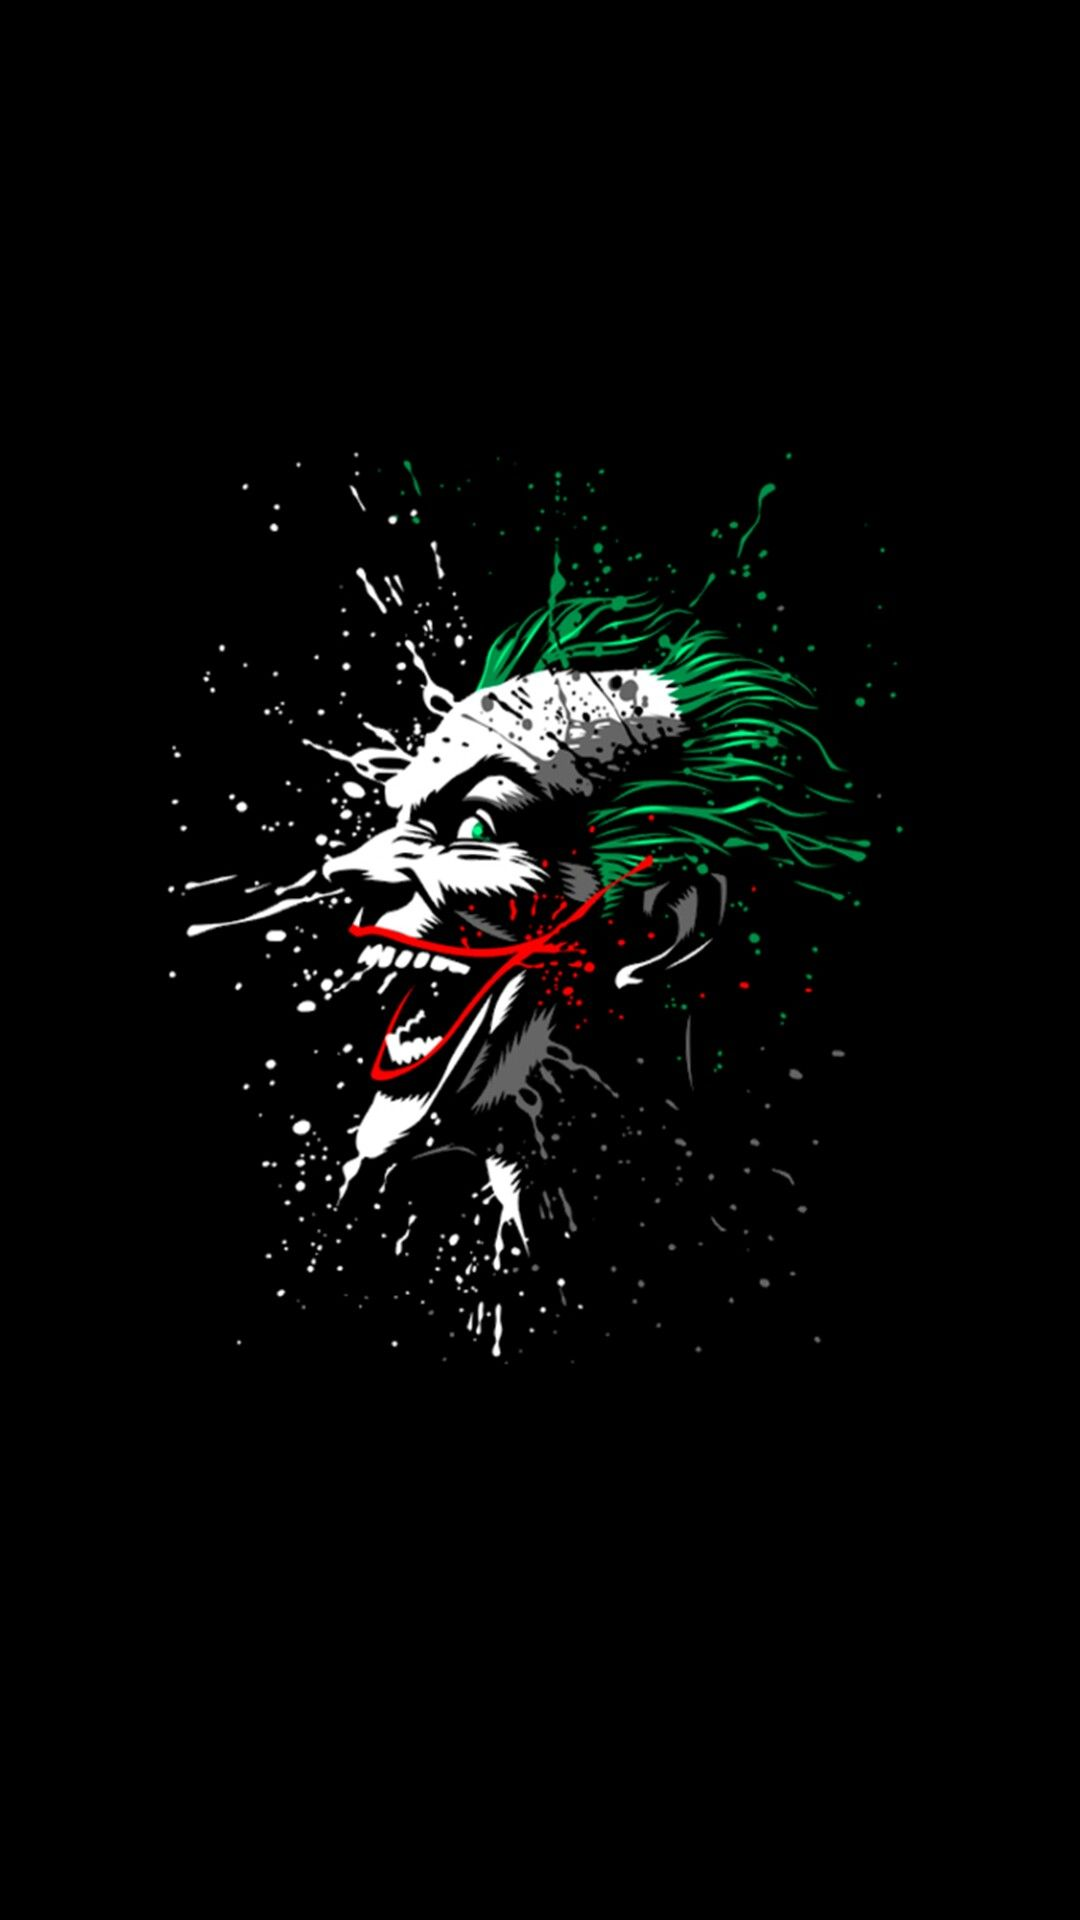 Pin On Joker Wallpaper